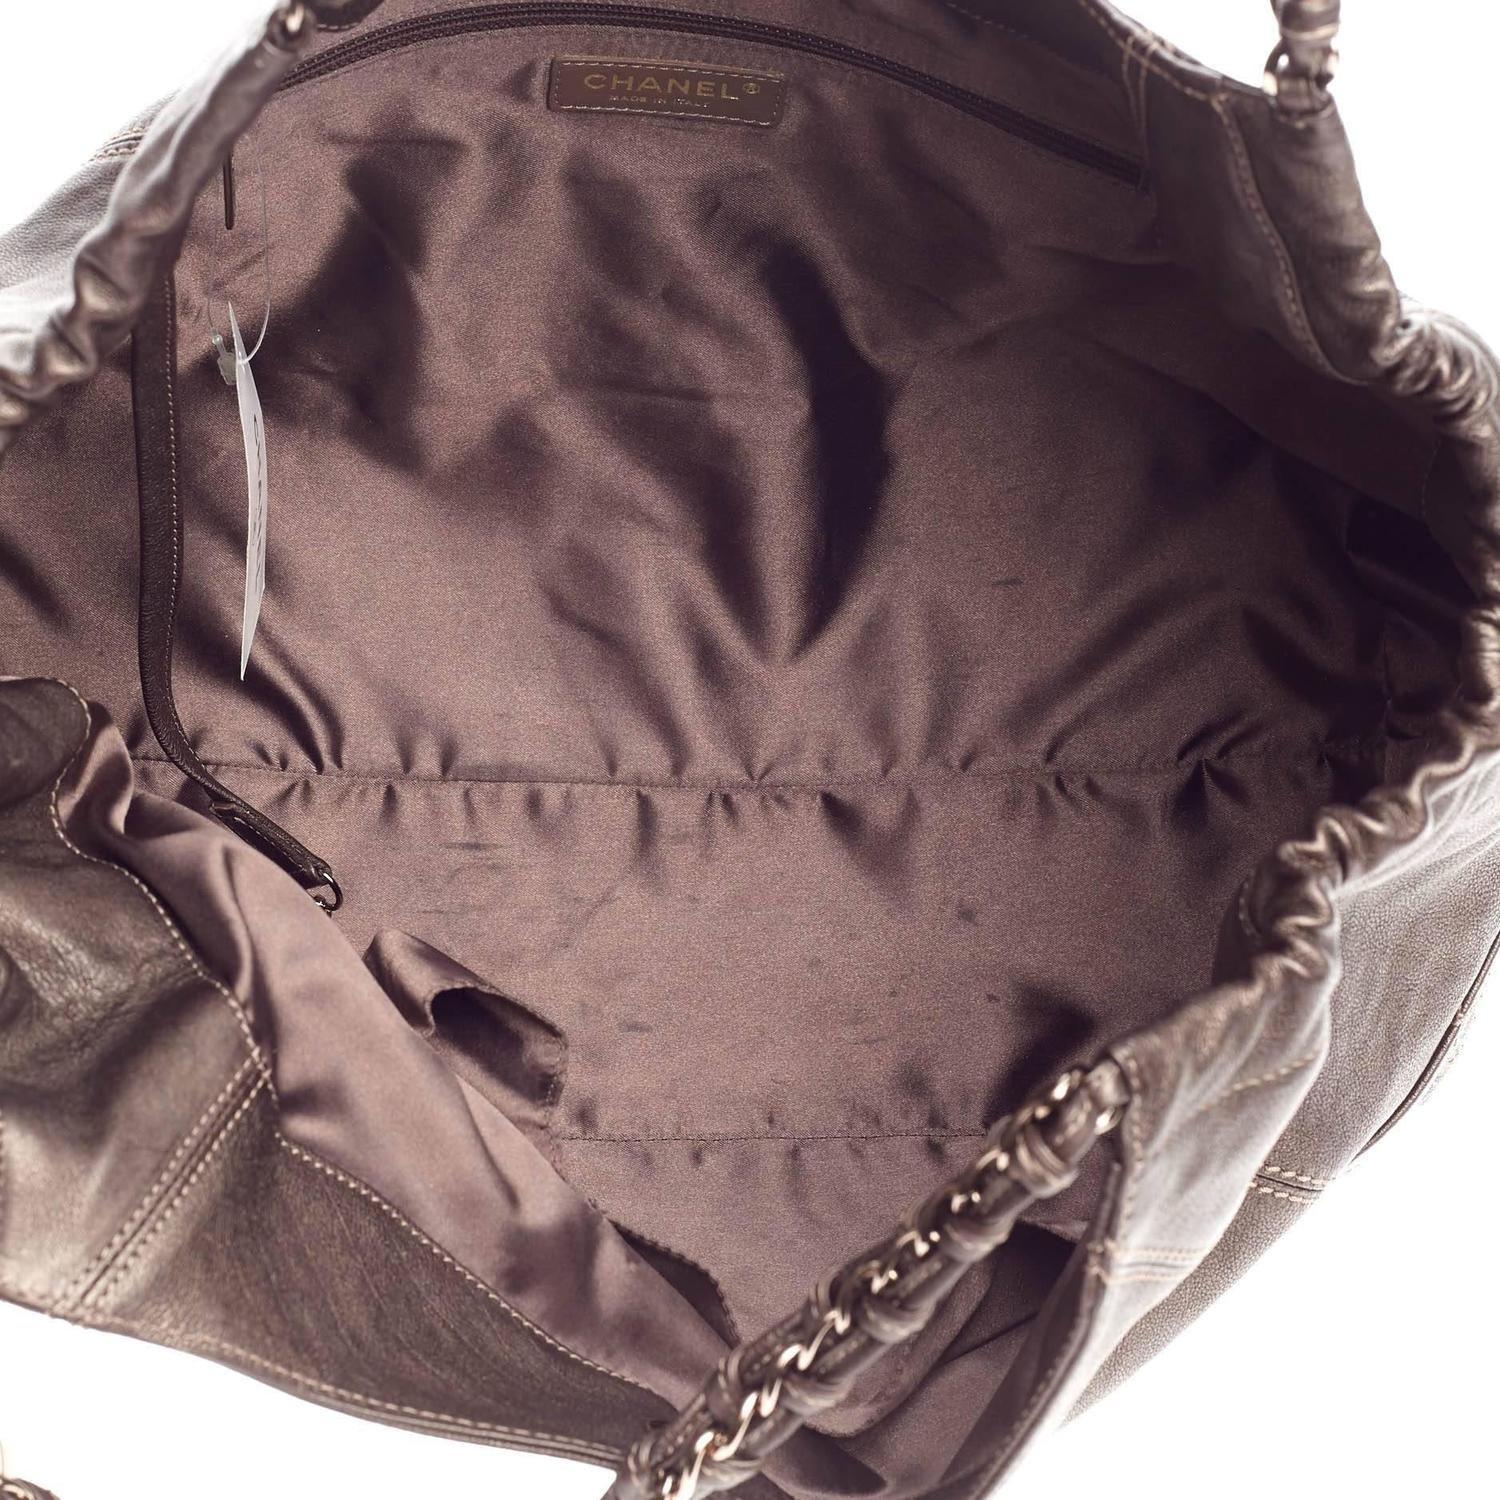 Chanel Coco Cabas Quilted Leather Baby at 1stdibs